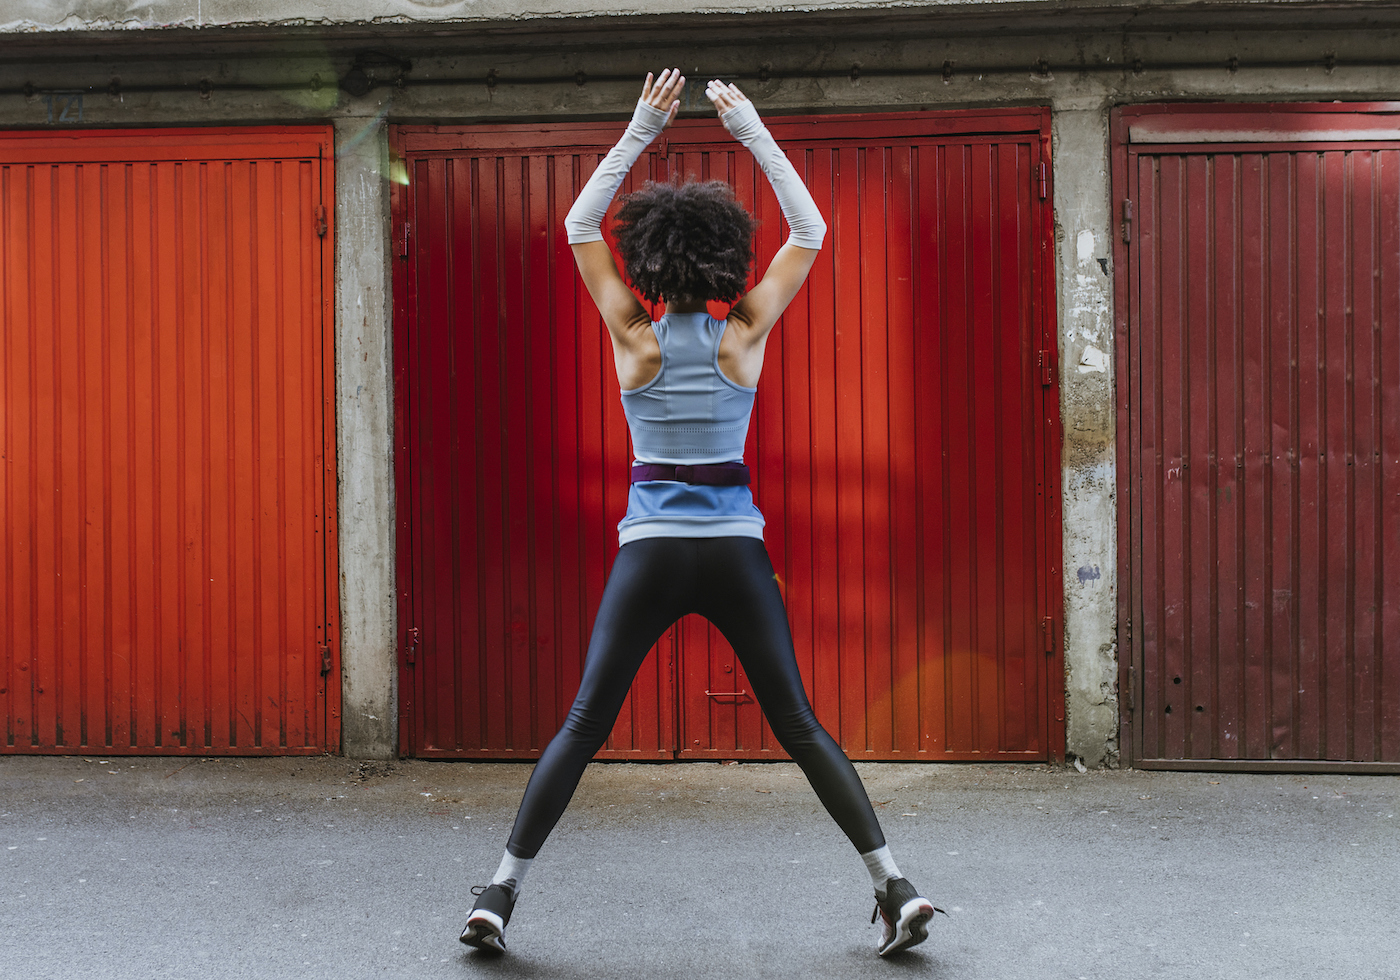 Take Your Basic Jumping Jacks Up a Notch With These 5 Heart-Pumping Variations